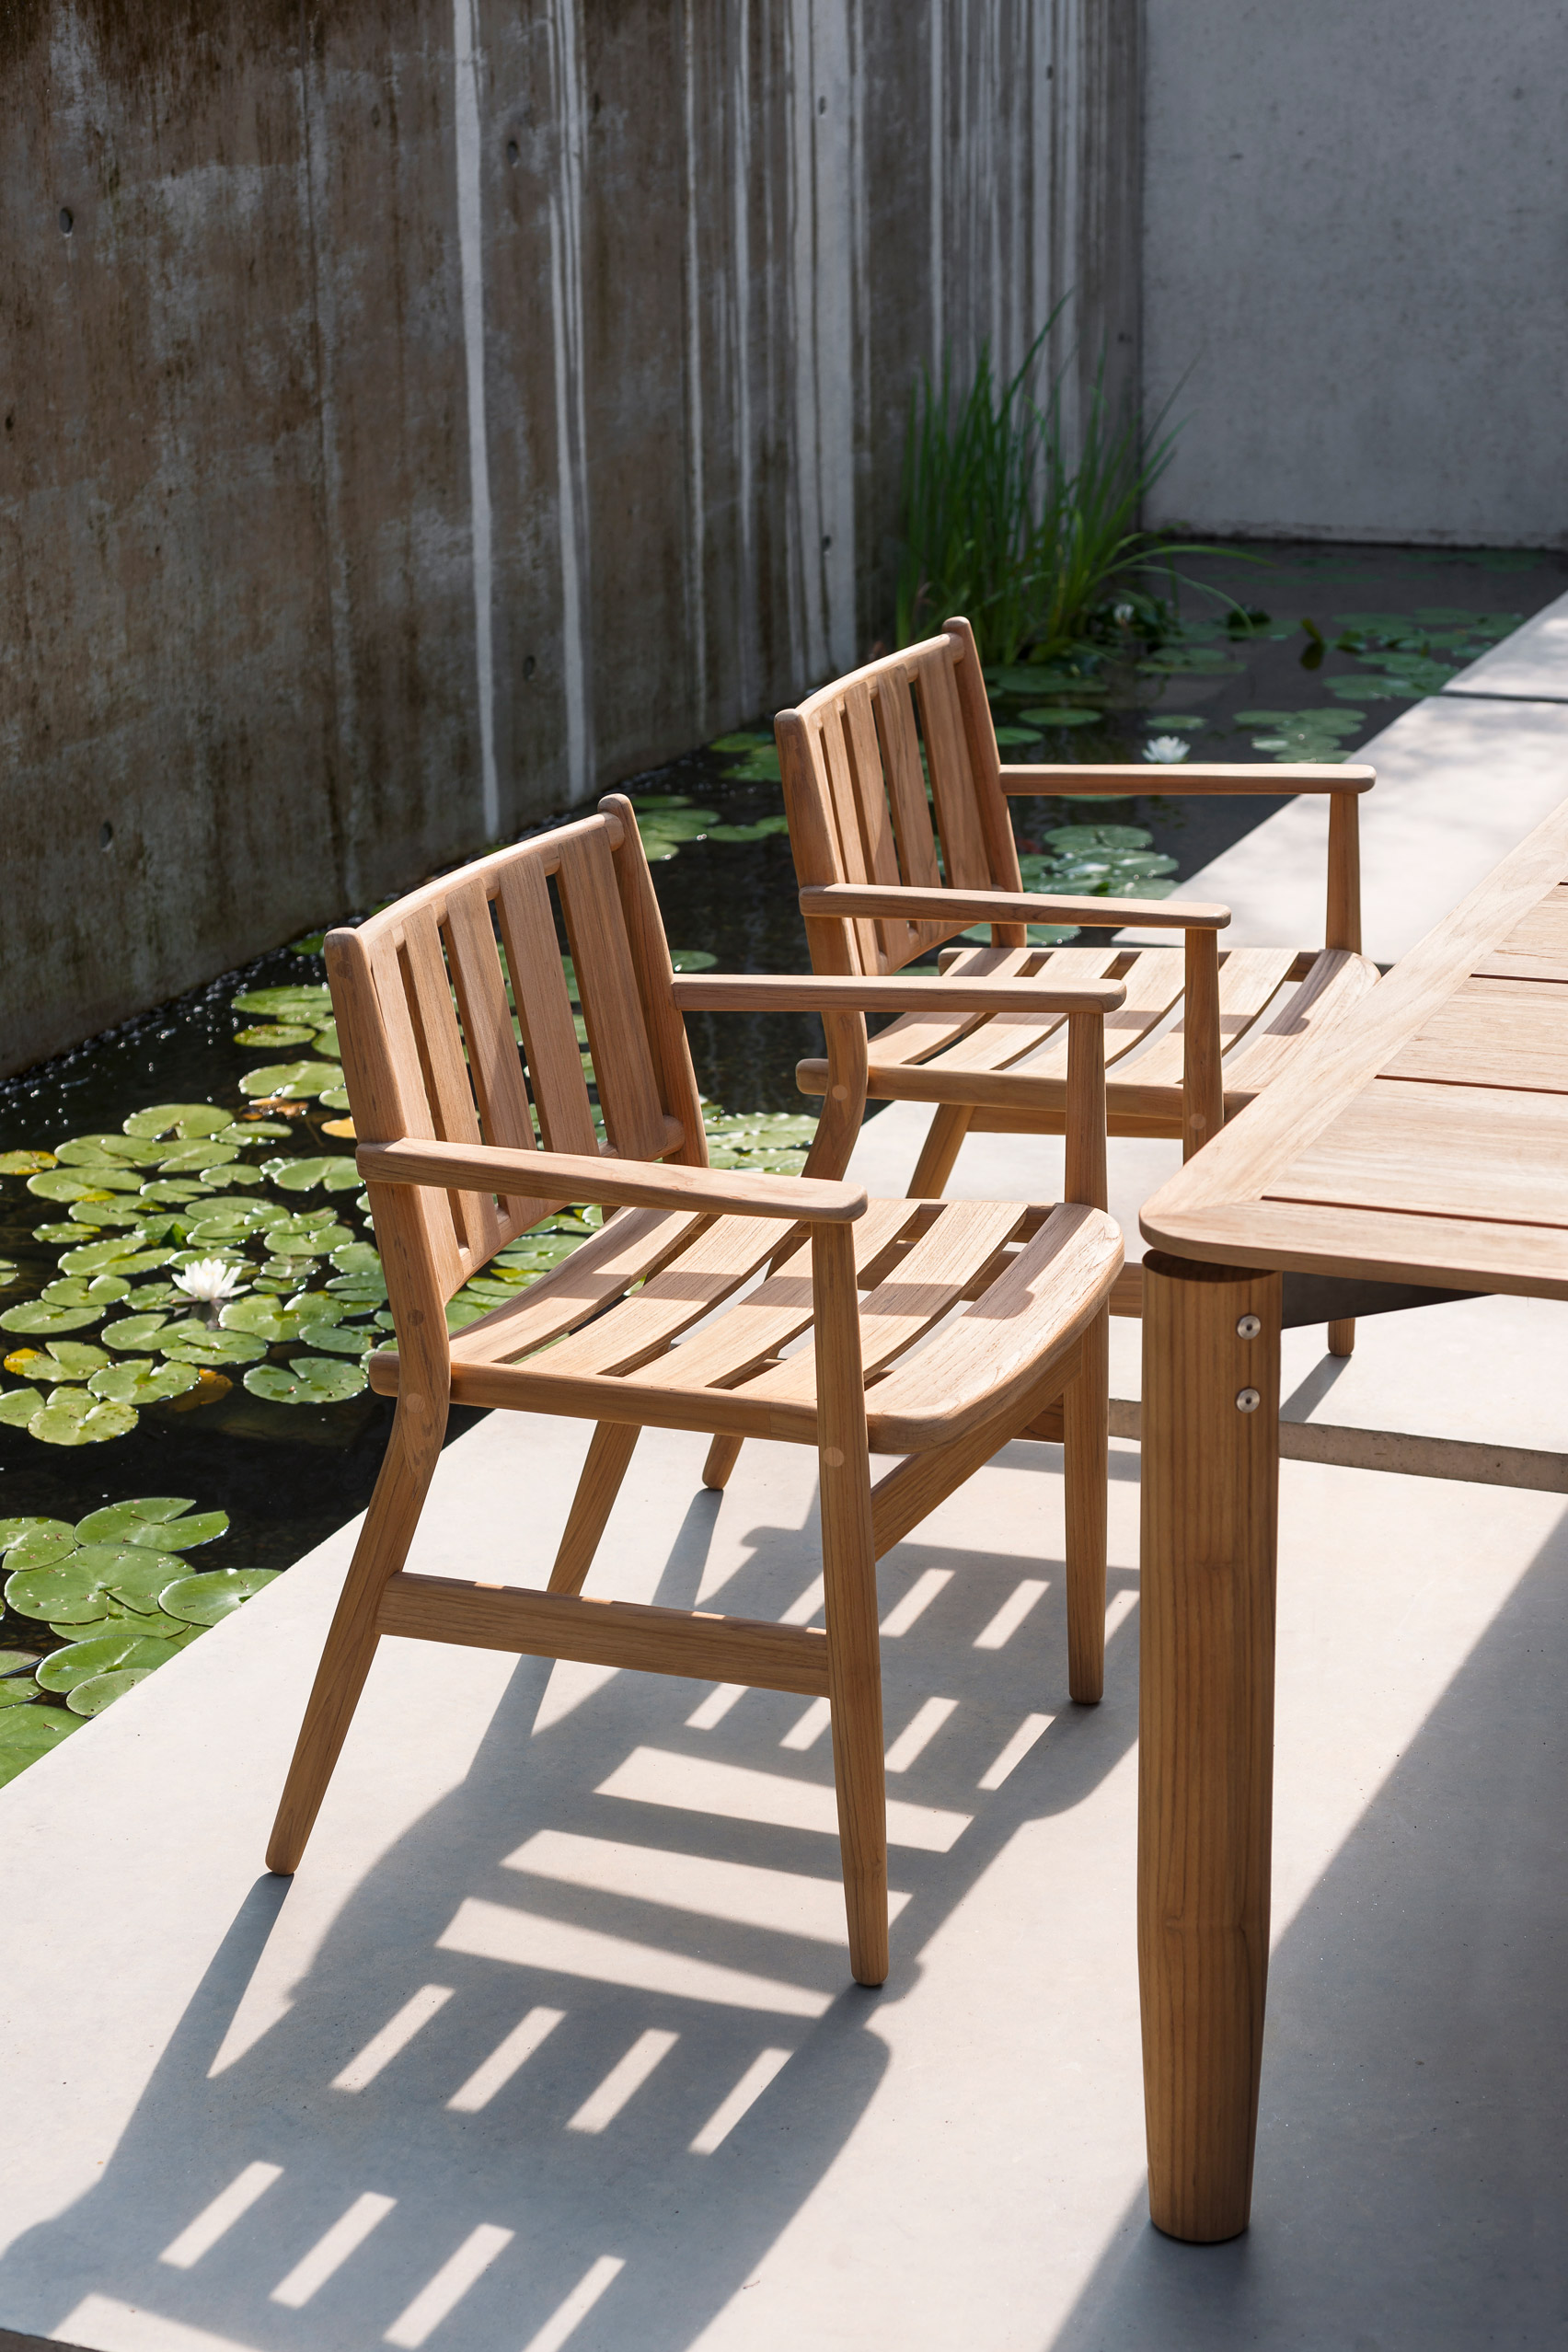 A pair of outdoor dining chairs made from teak